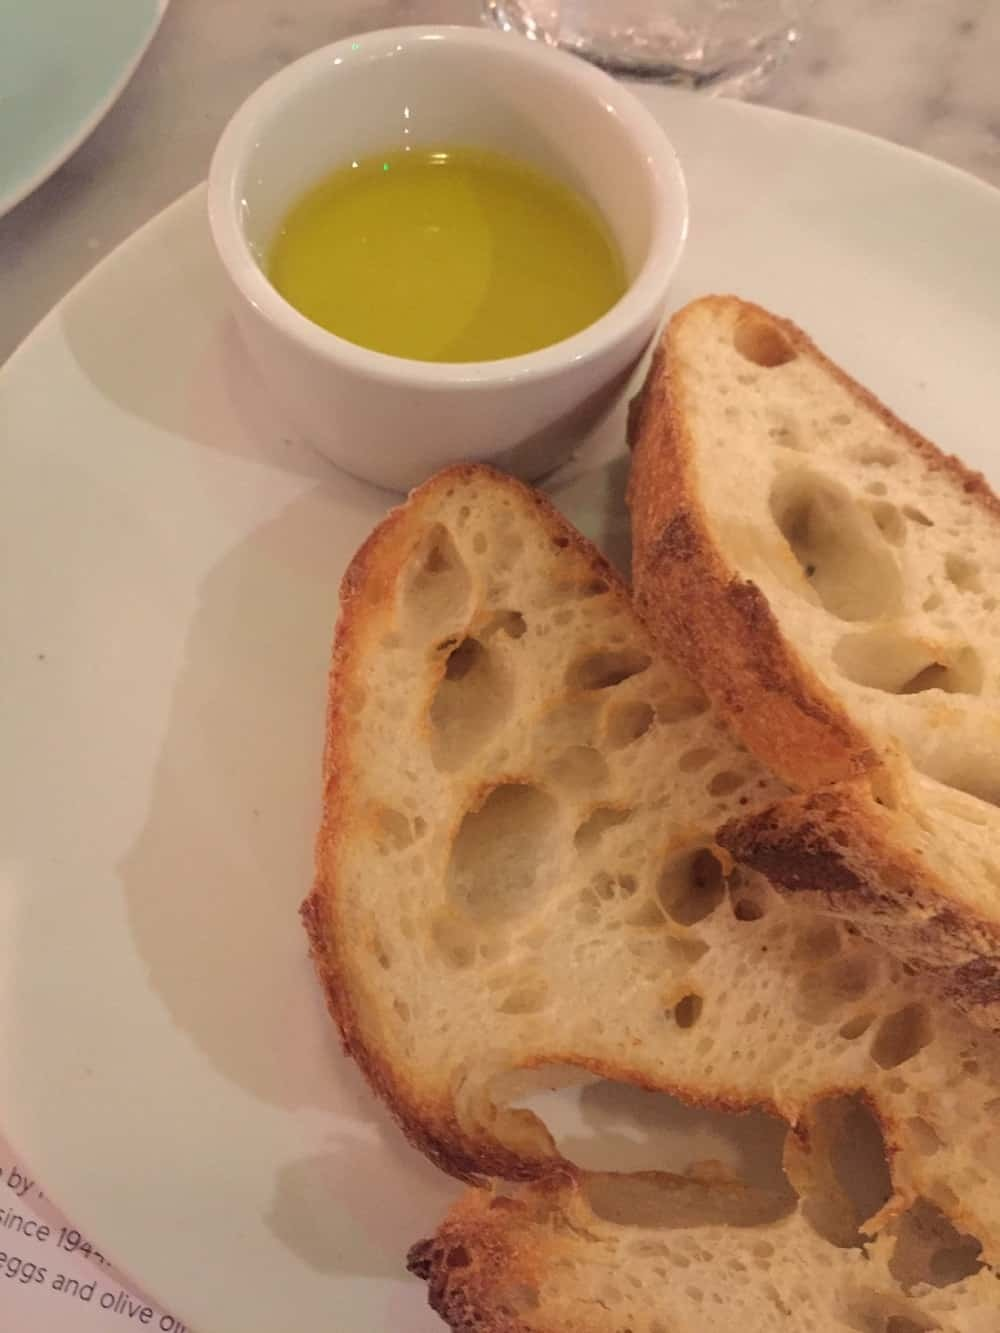 Bread with olive oil at Lina Stores